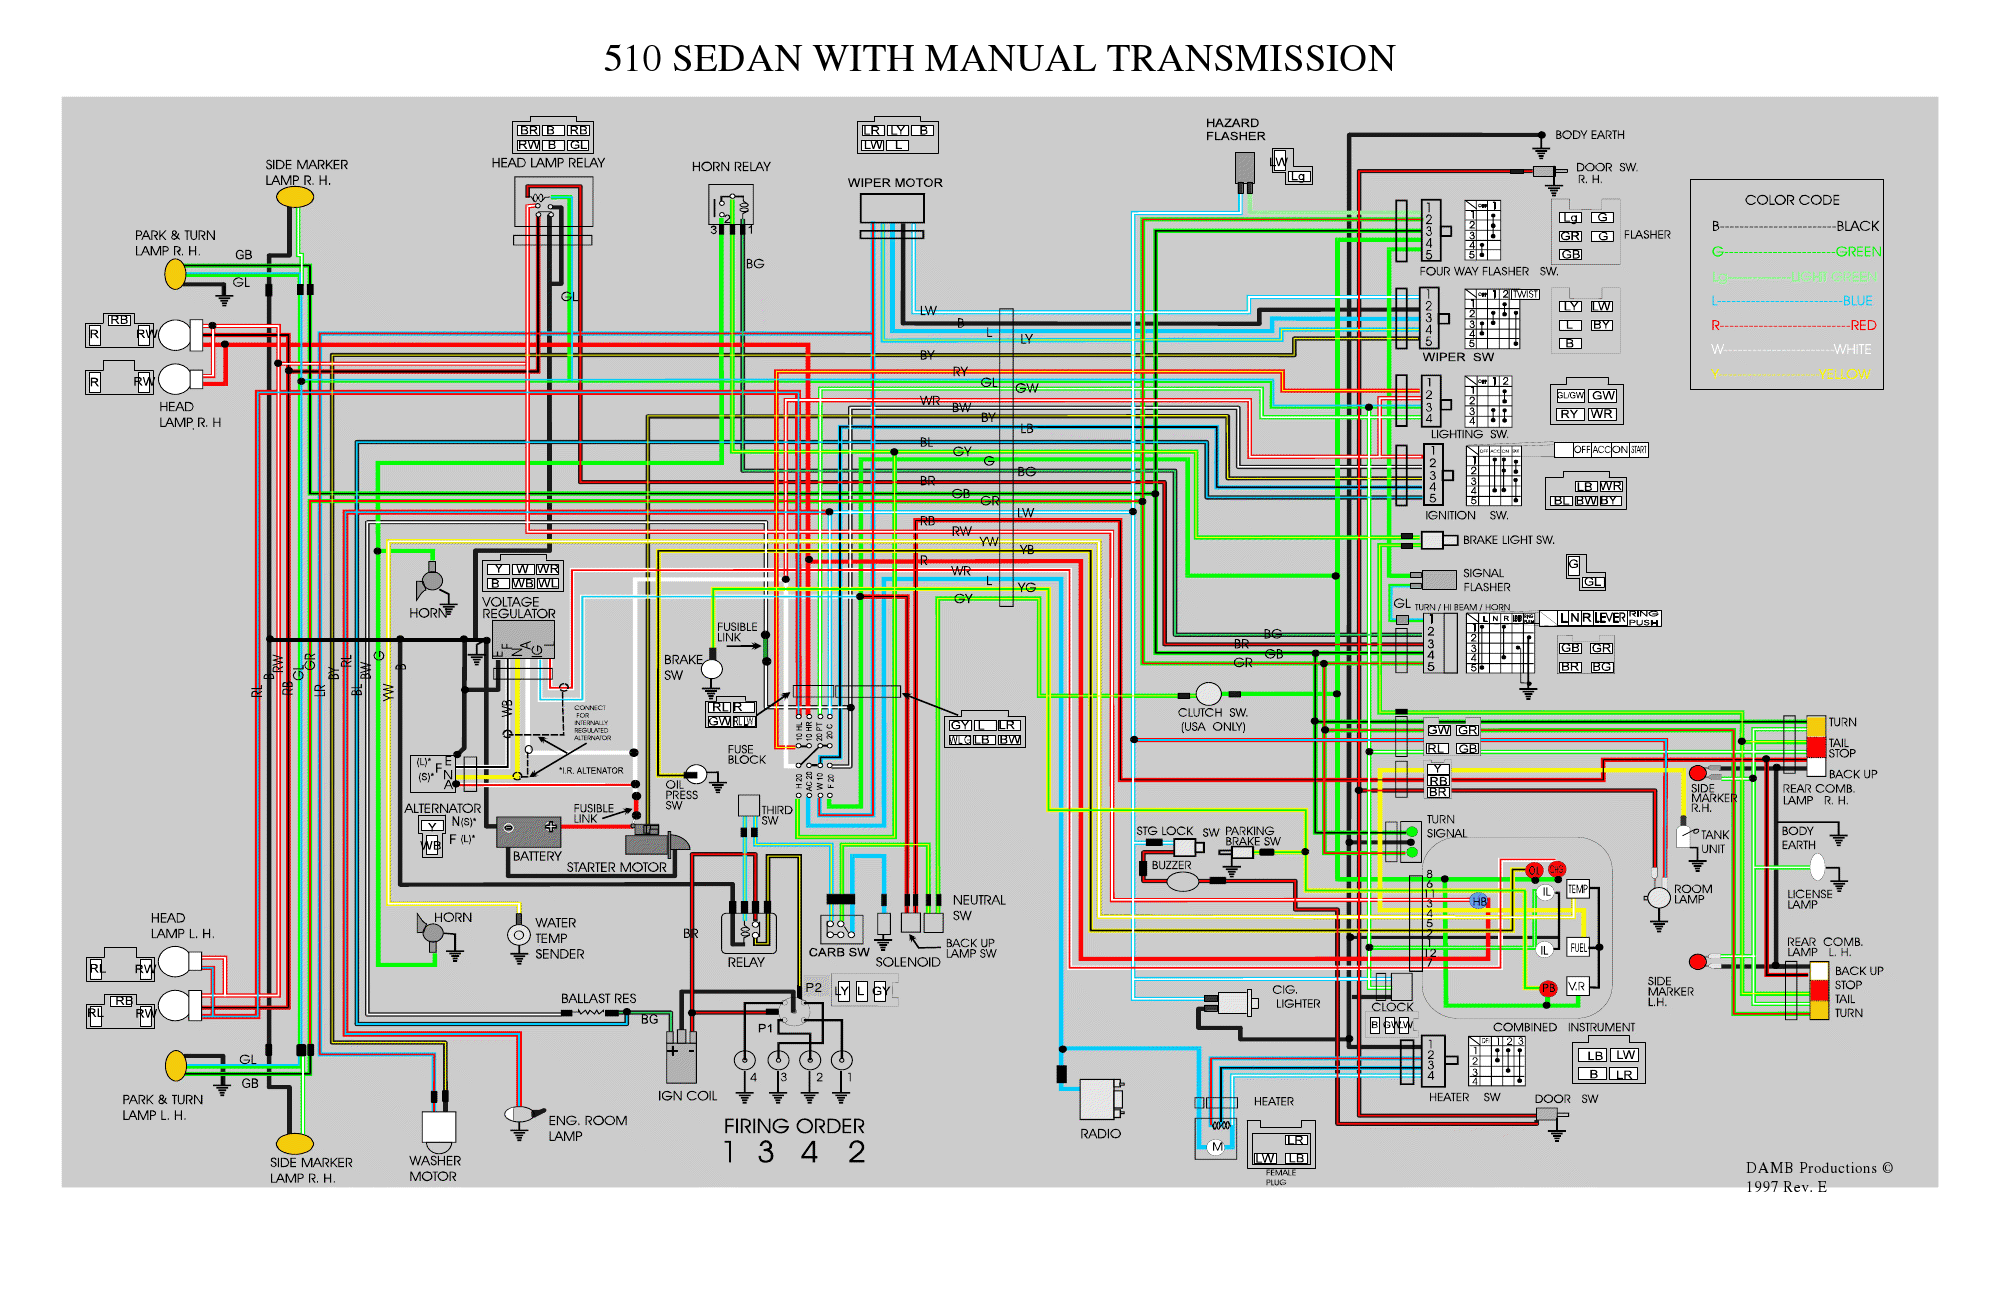 datsun_510_wiring_diagram 240z wiring diagram 73 240z wiring diagram \u2022 wiring diagrams j datsun 720 wiring diagram at n-0.co